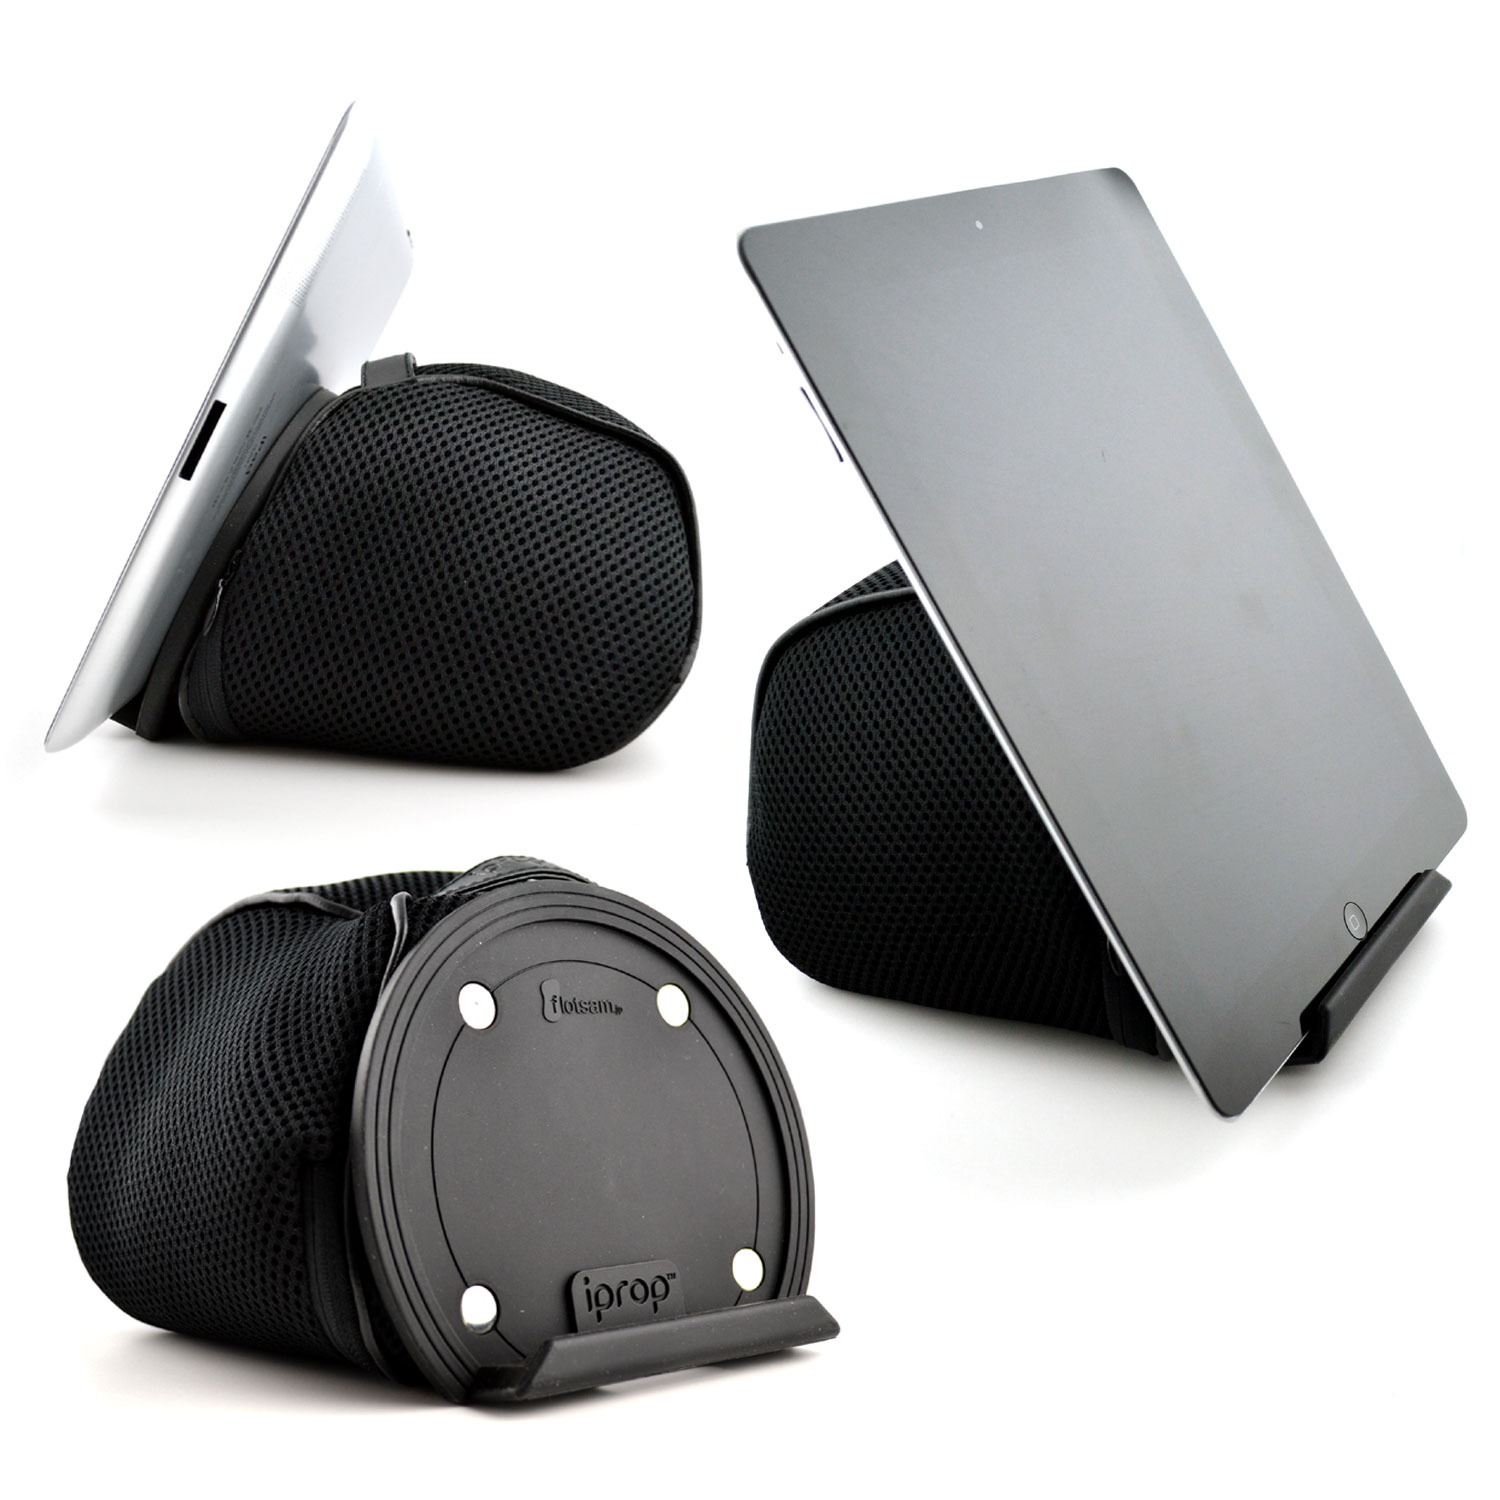 iPad Bed & Lap Stand by iProp; Bean Bag Pillow Universal Tablet Holder for iPads and Tablets, eReaders (Black)